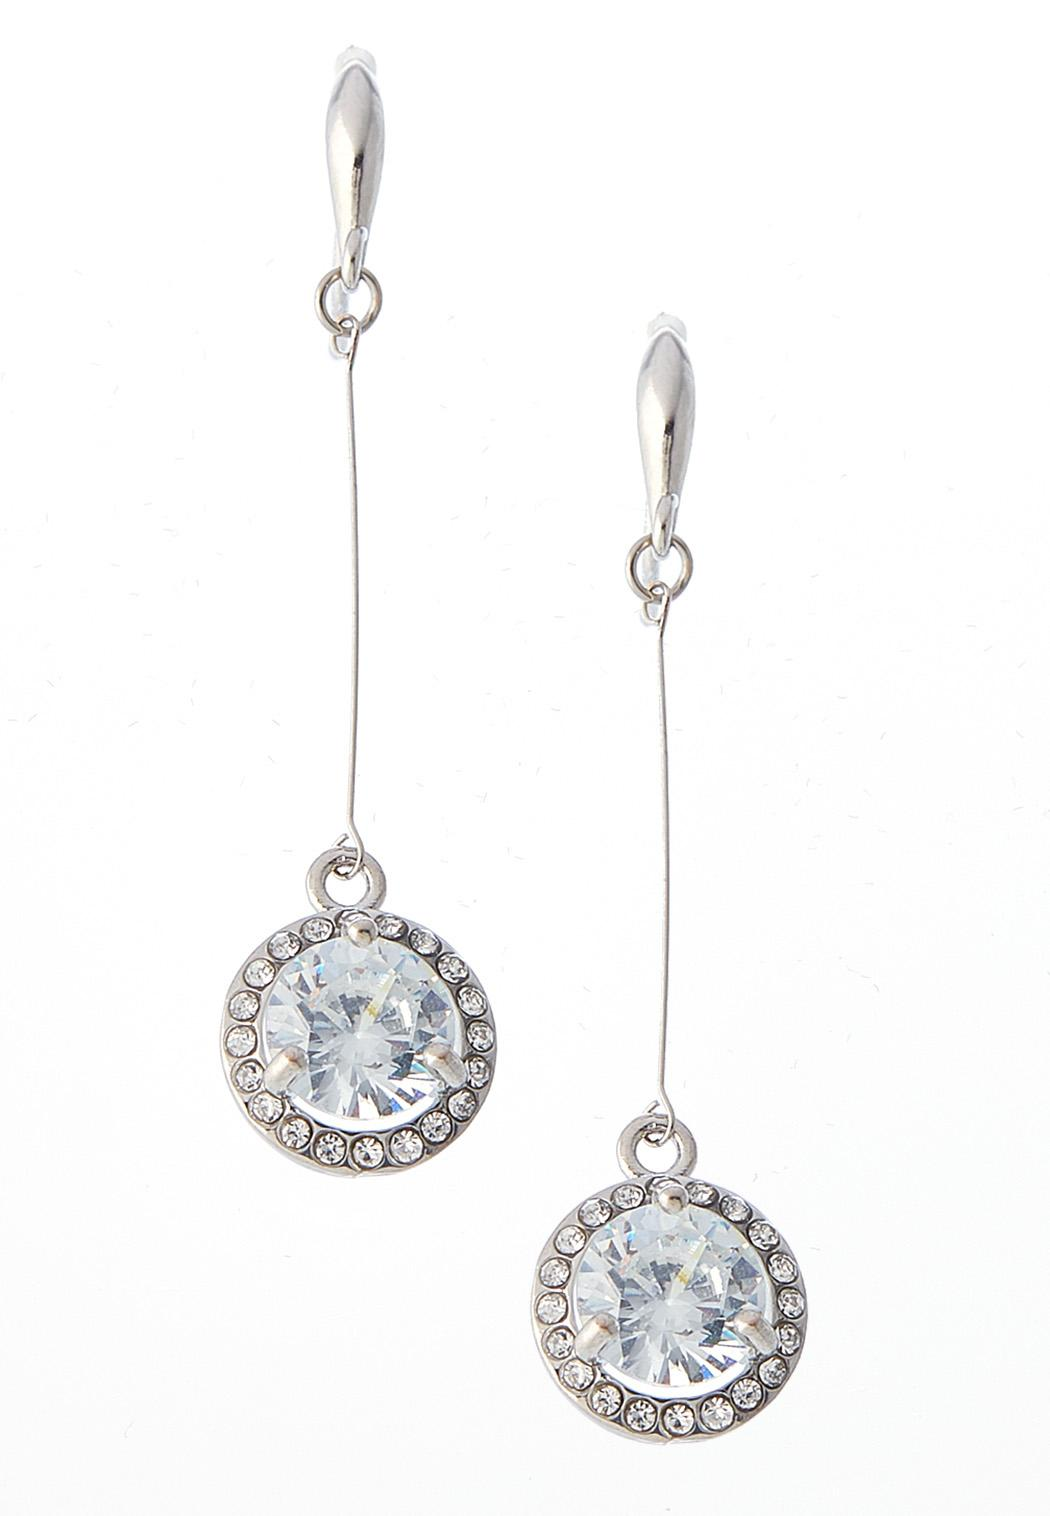 Sparkling Illusion Earrings